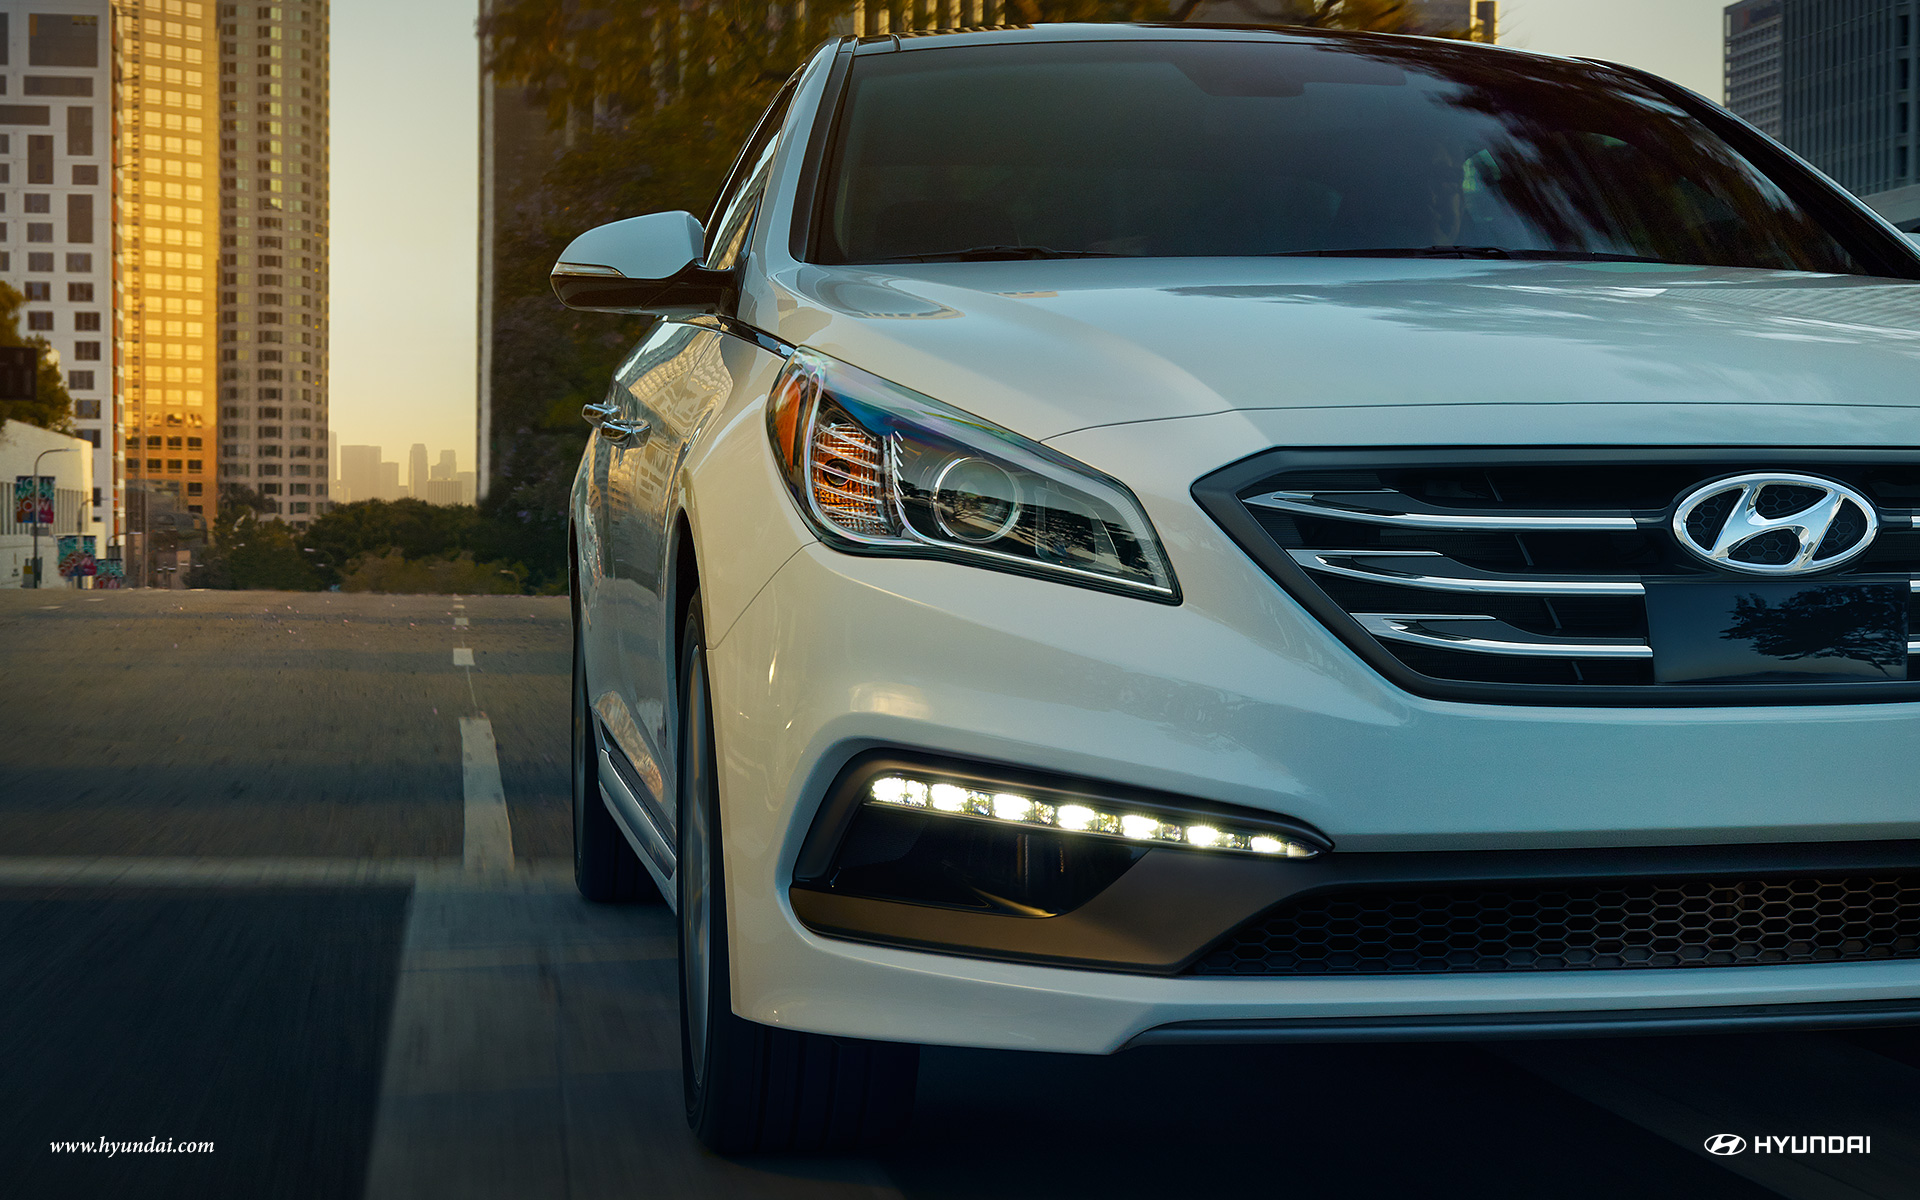 See the Hyundai Sonata Seven Days a Week!